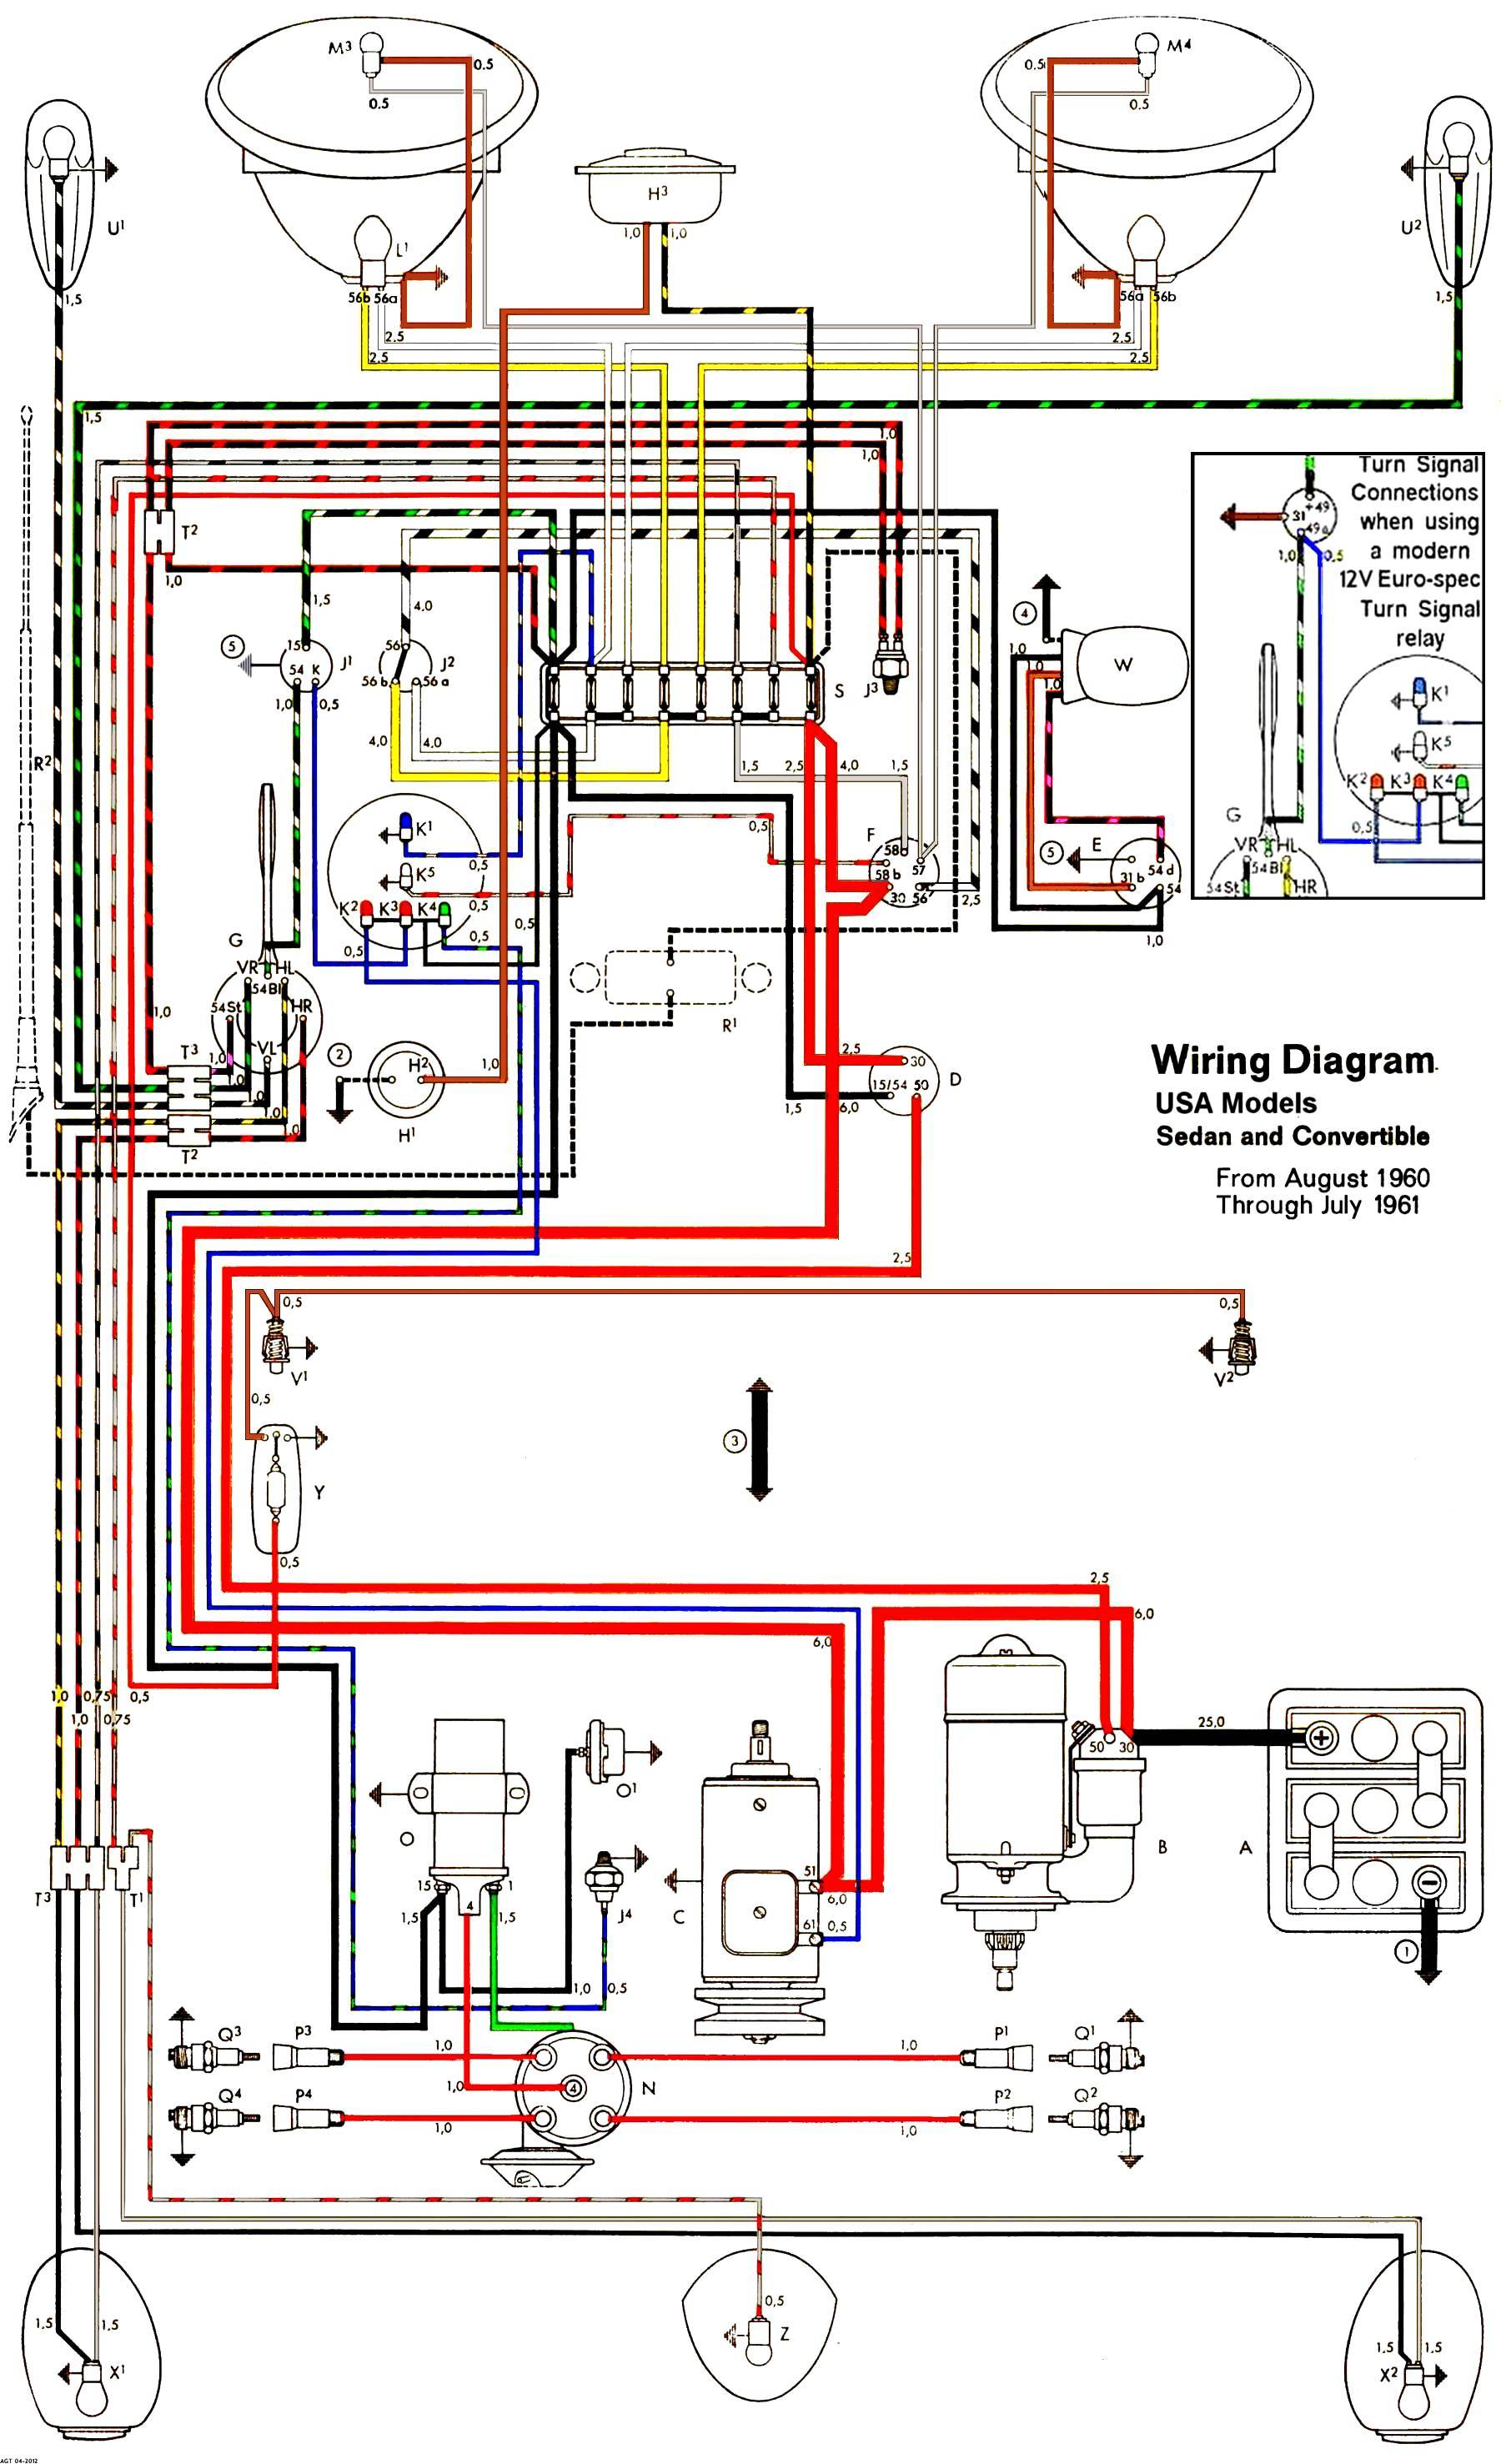 1961USA T1 bentley t1 wiring diagram bentley wiring diagrams instruction bentley wiring diagrams at fashall.co